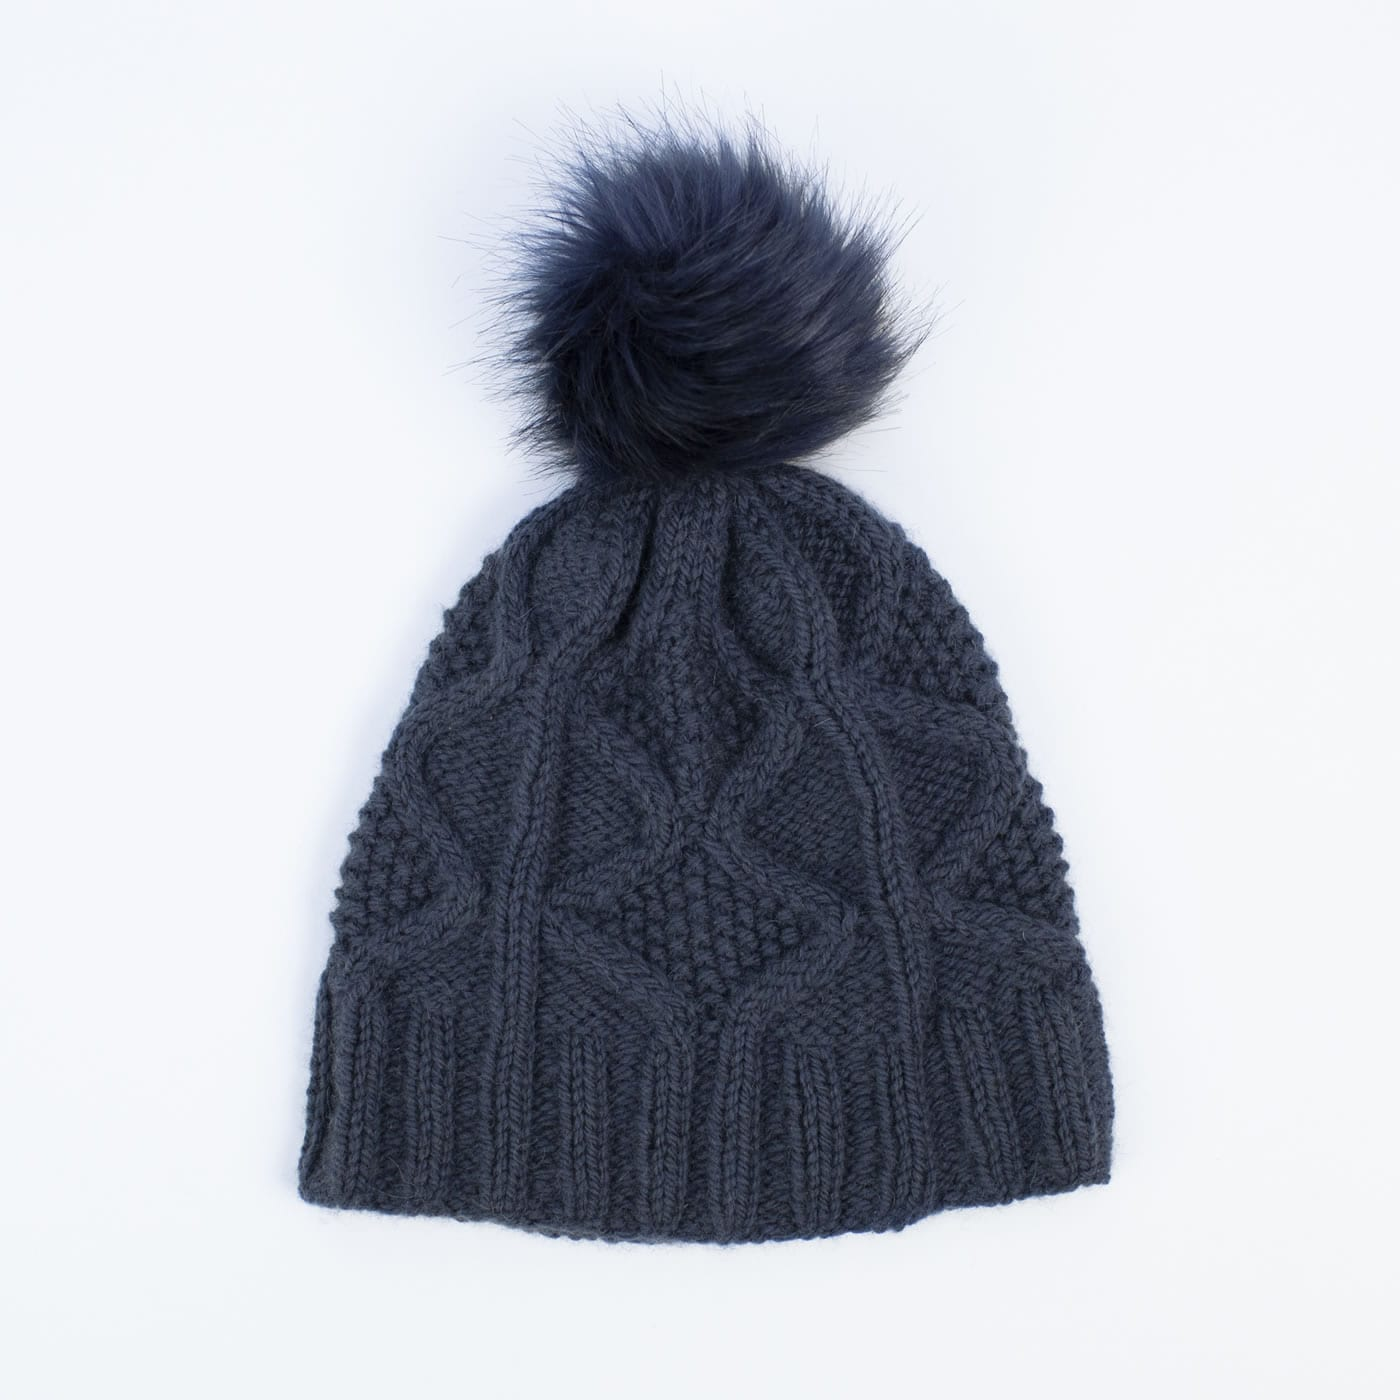 The Woven Alpine Beanie Knit Kit